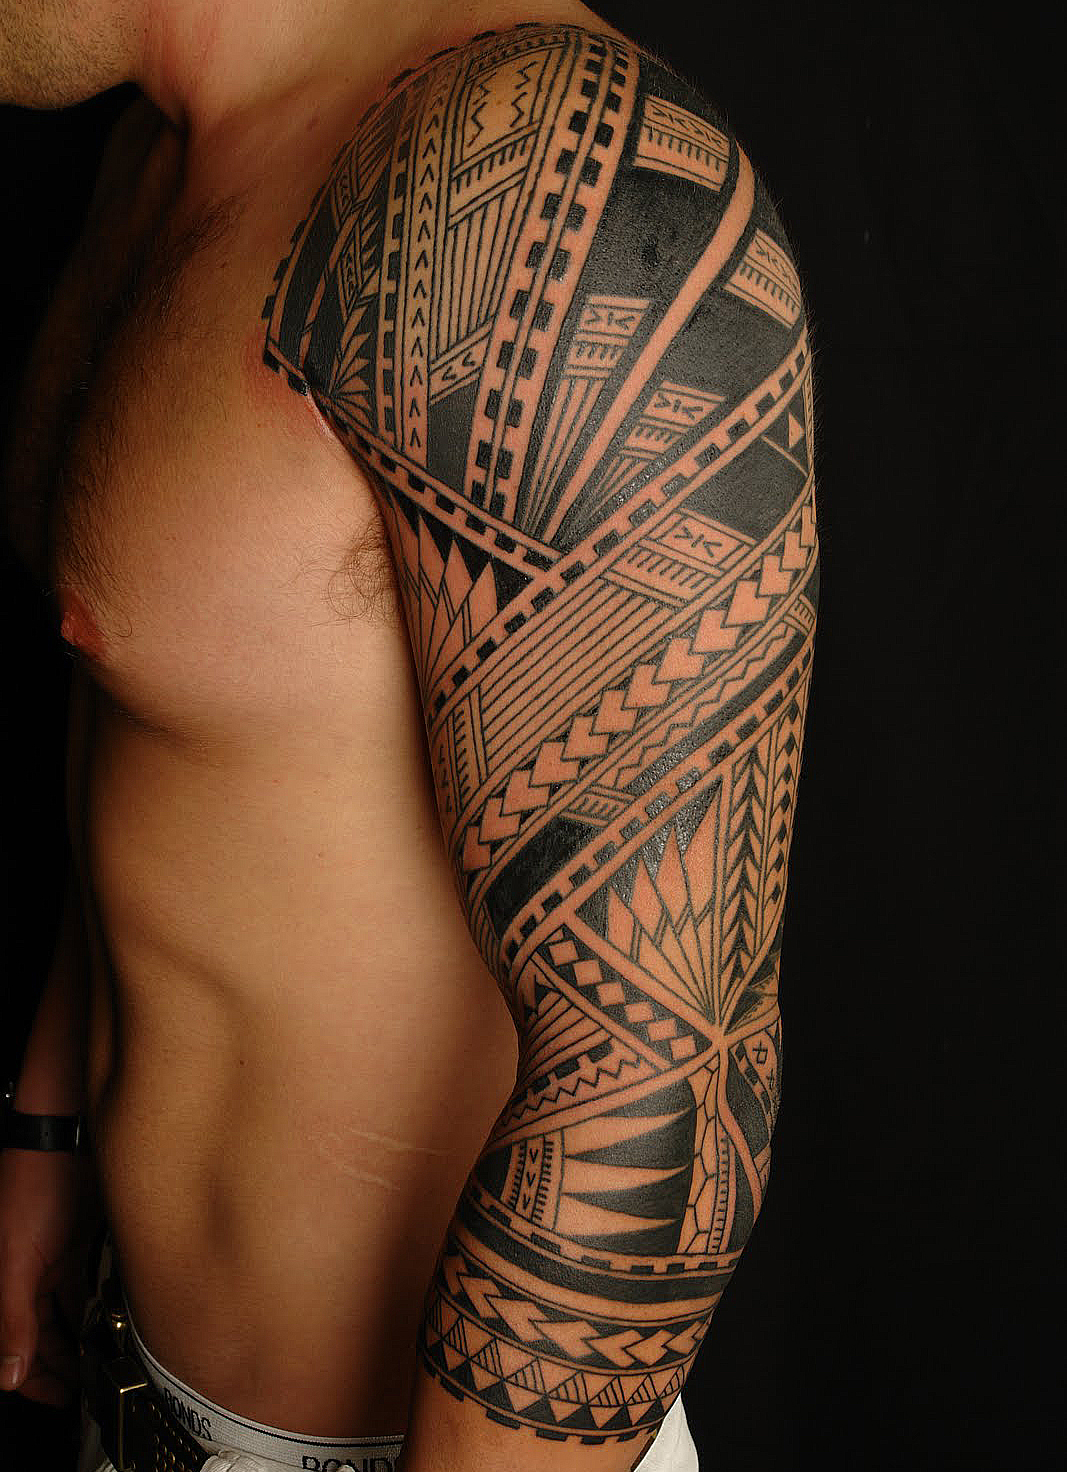 Black Ink Tribal Tattoos On Chest And Arm photo - 2